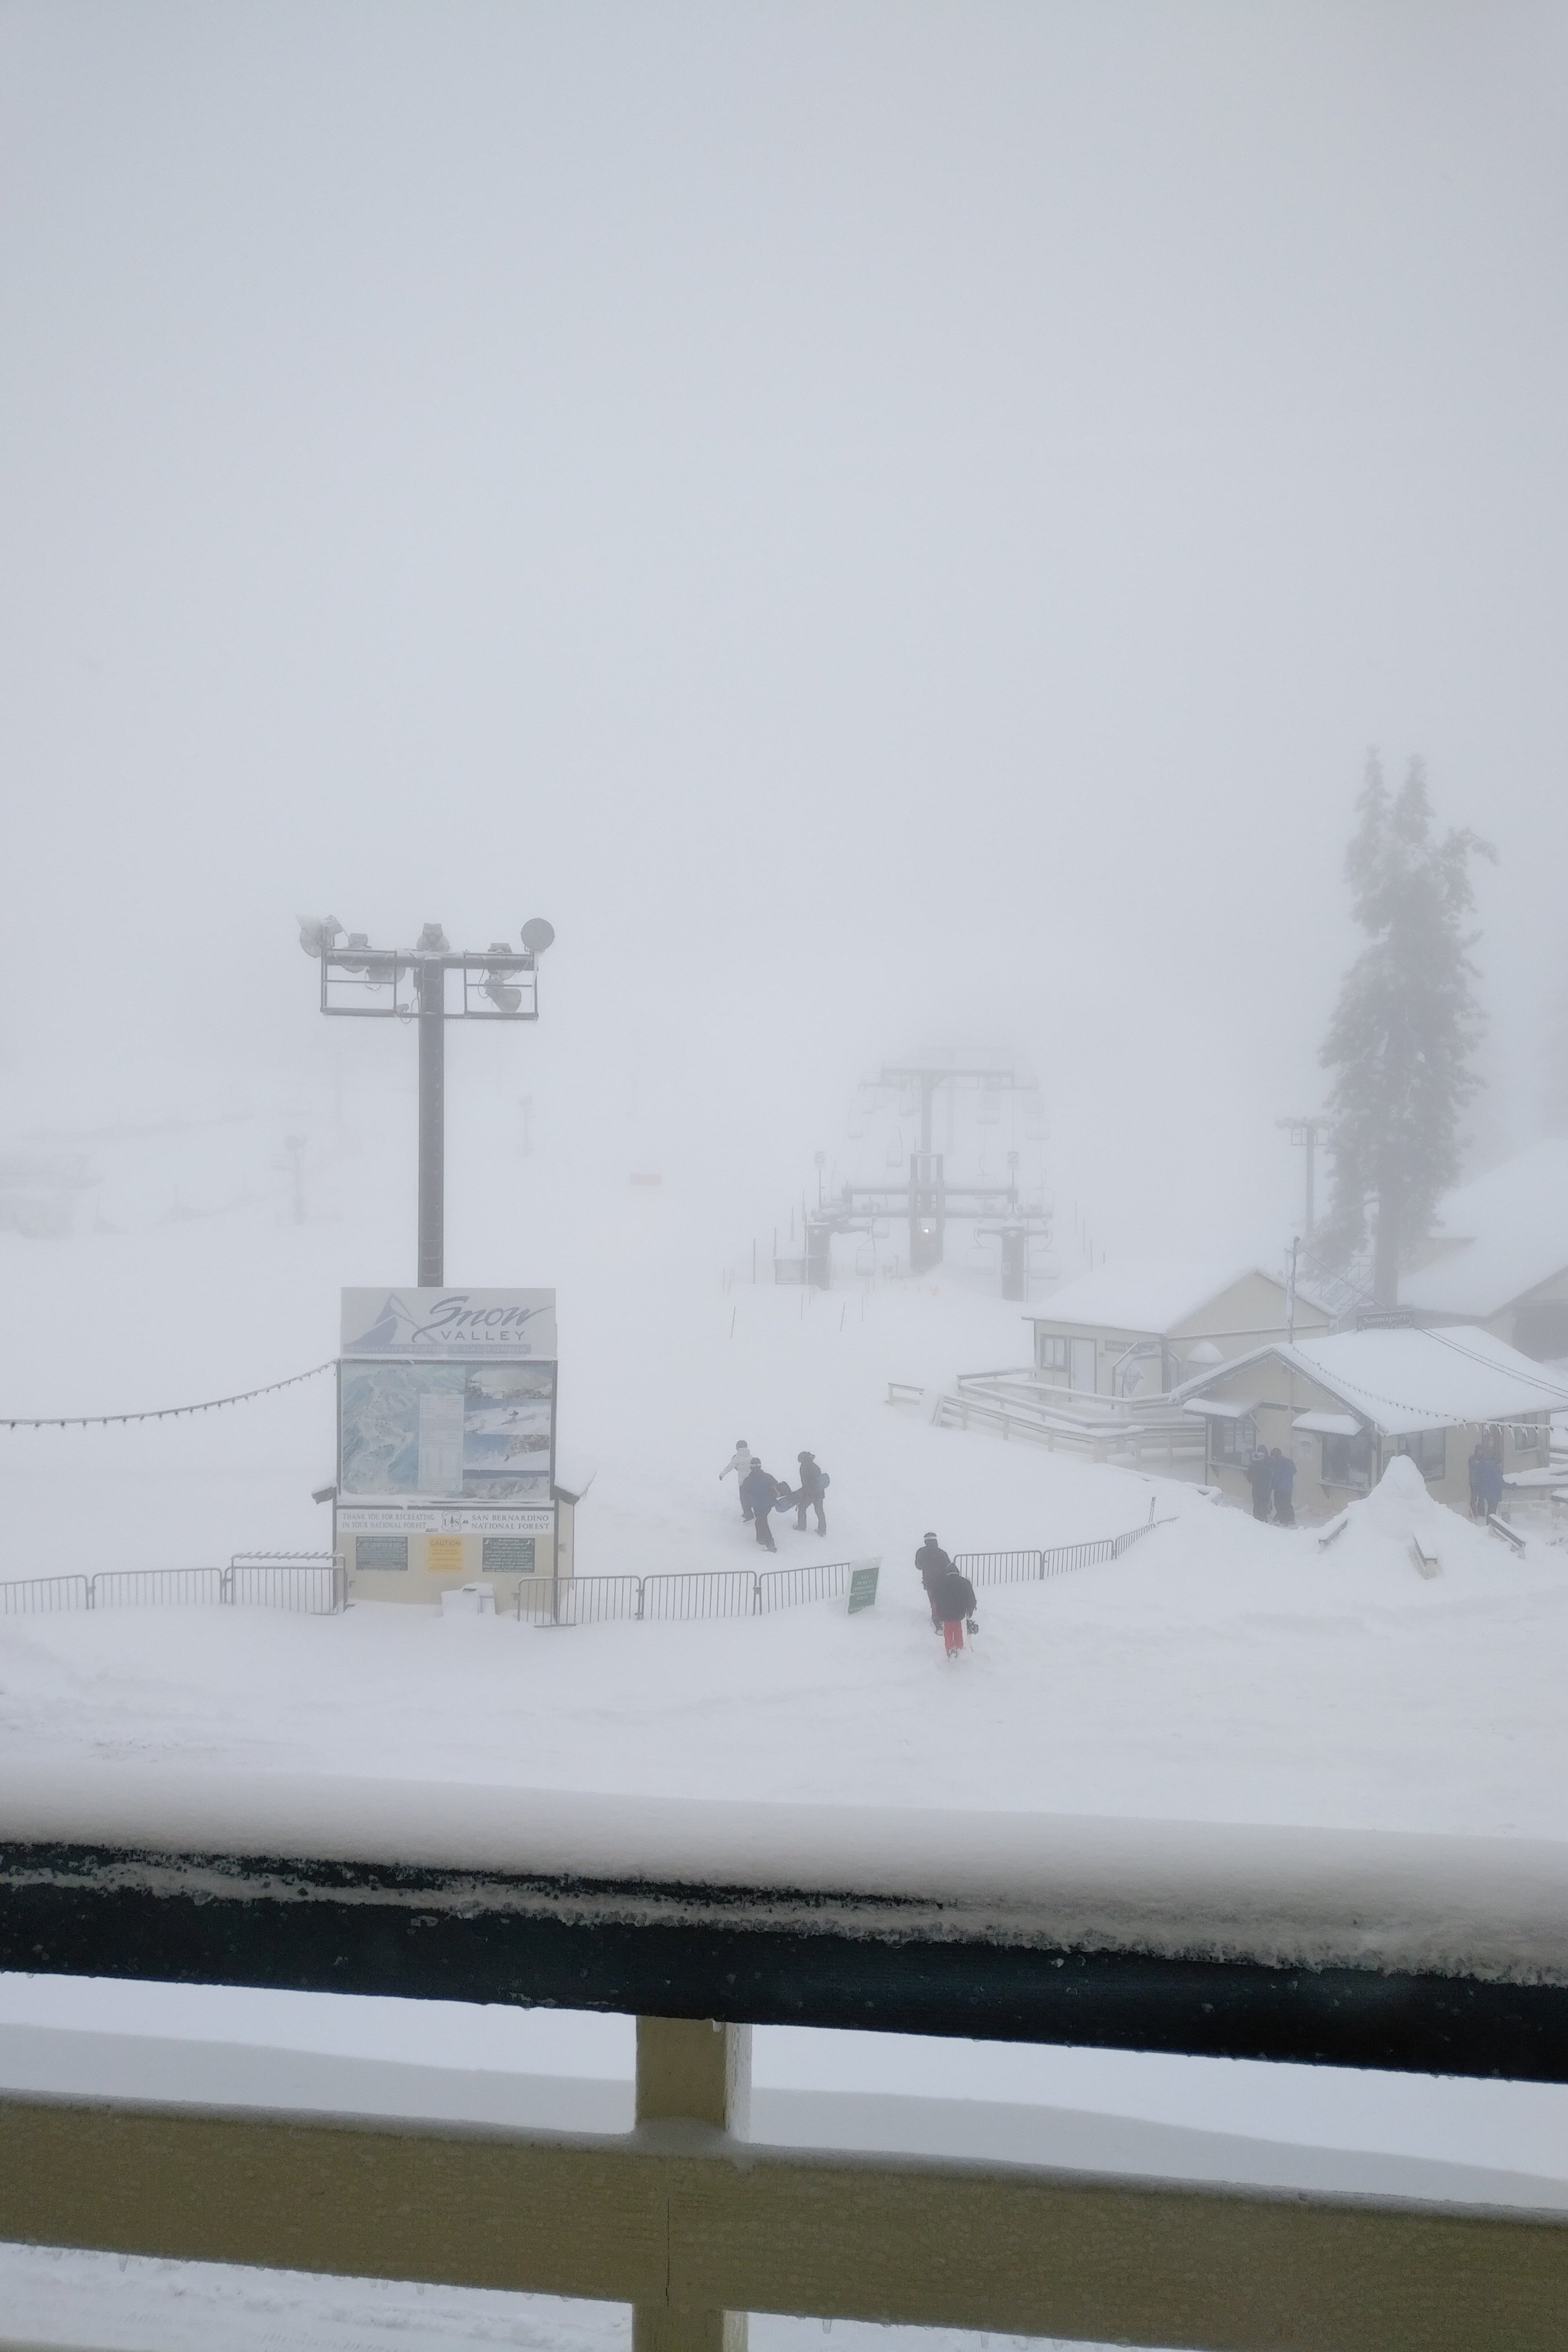 View of ski lifts in snowy conditions